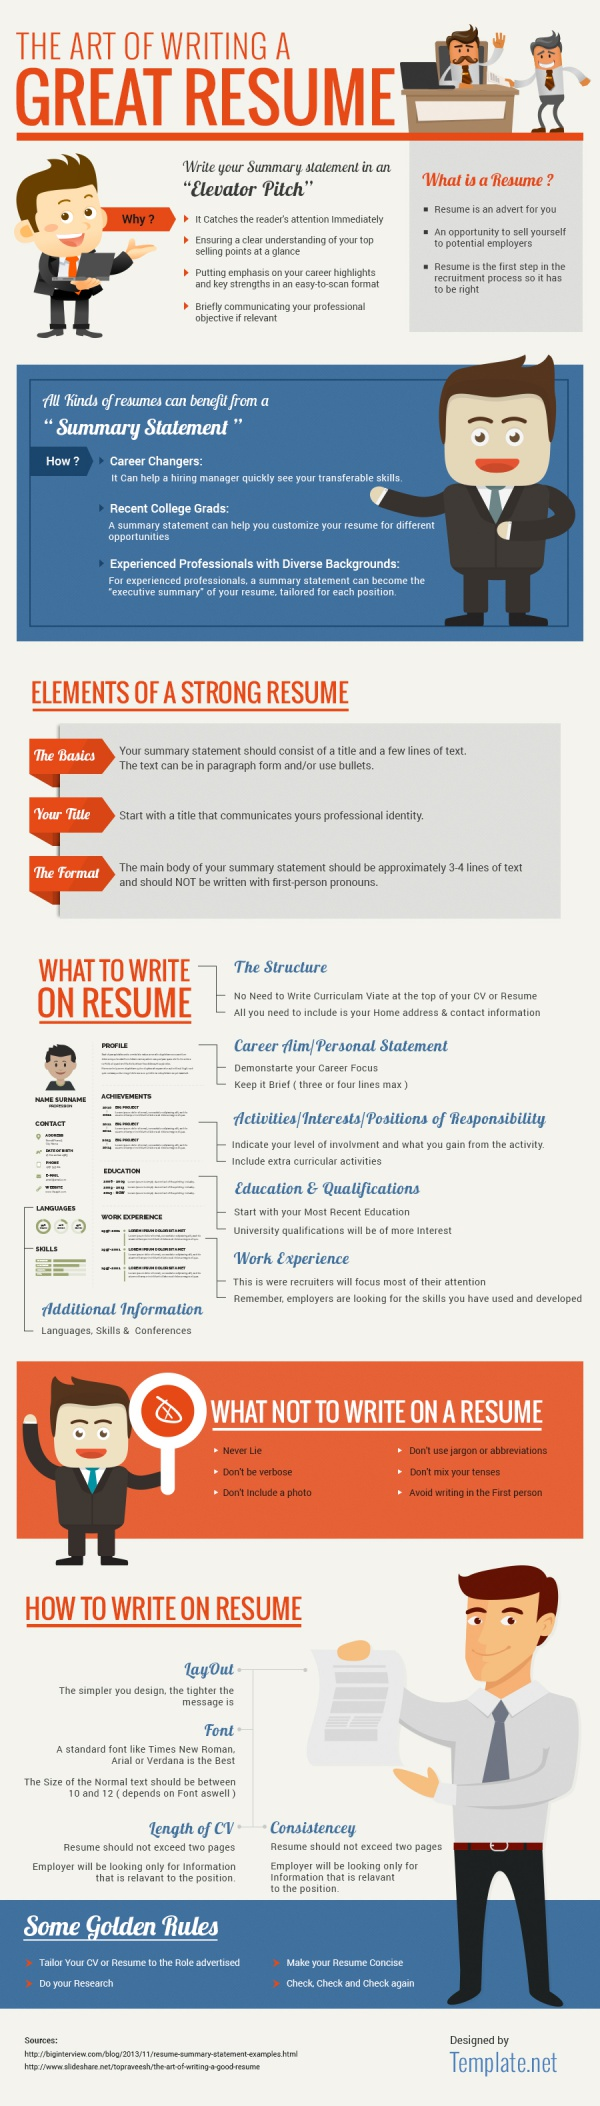 copywriter resume summary sample professional affiliations copywriter resume summary sample professional affiliations rabithah alawiyah rdw resume article writer the art writing great